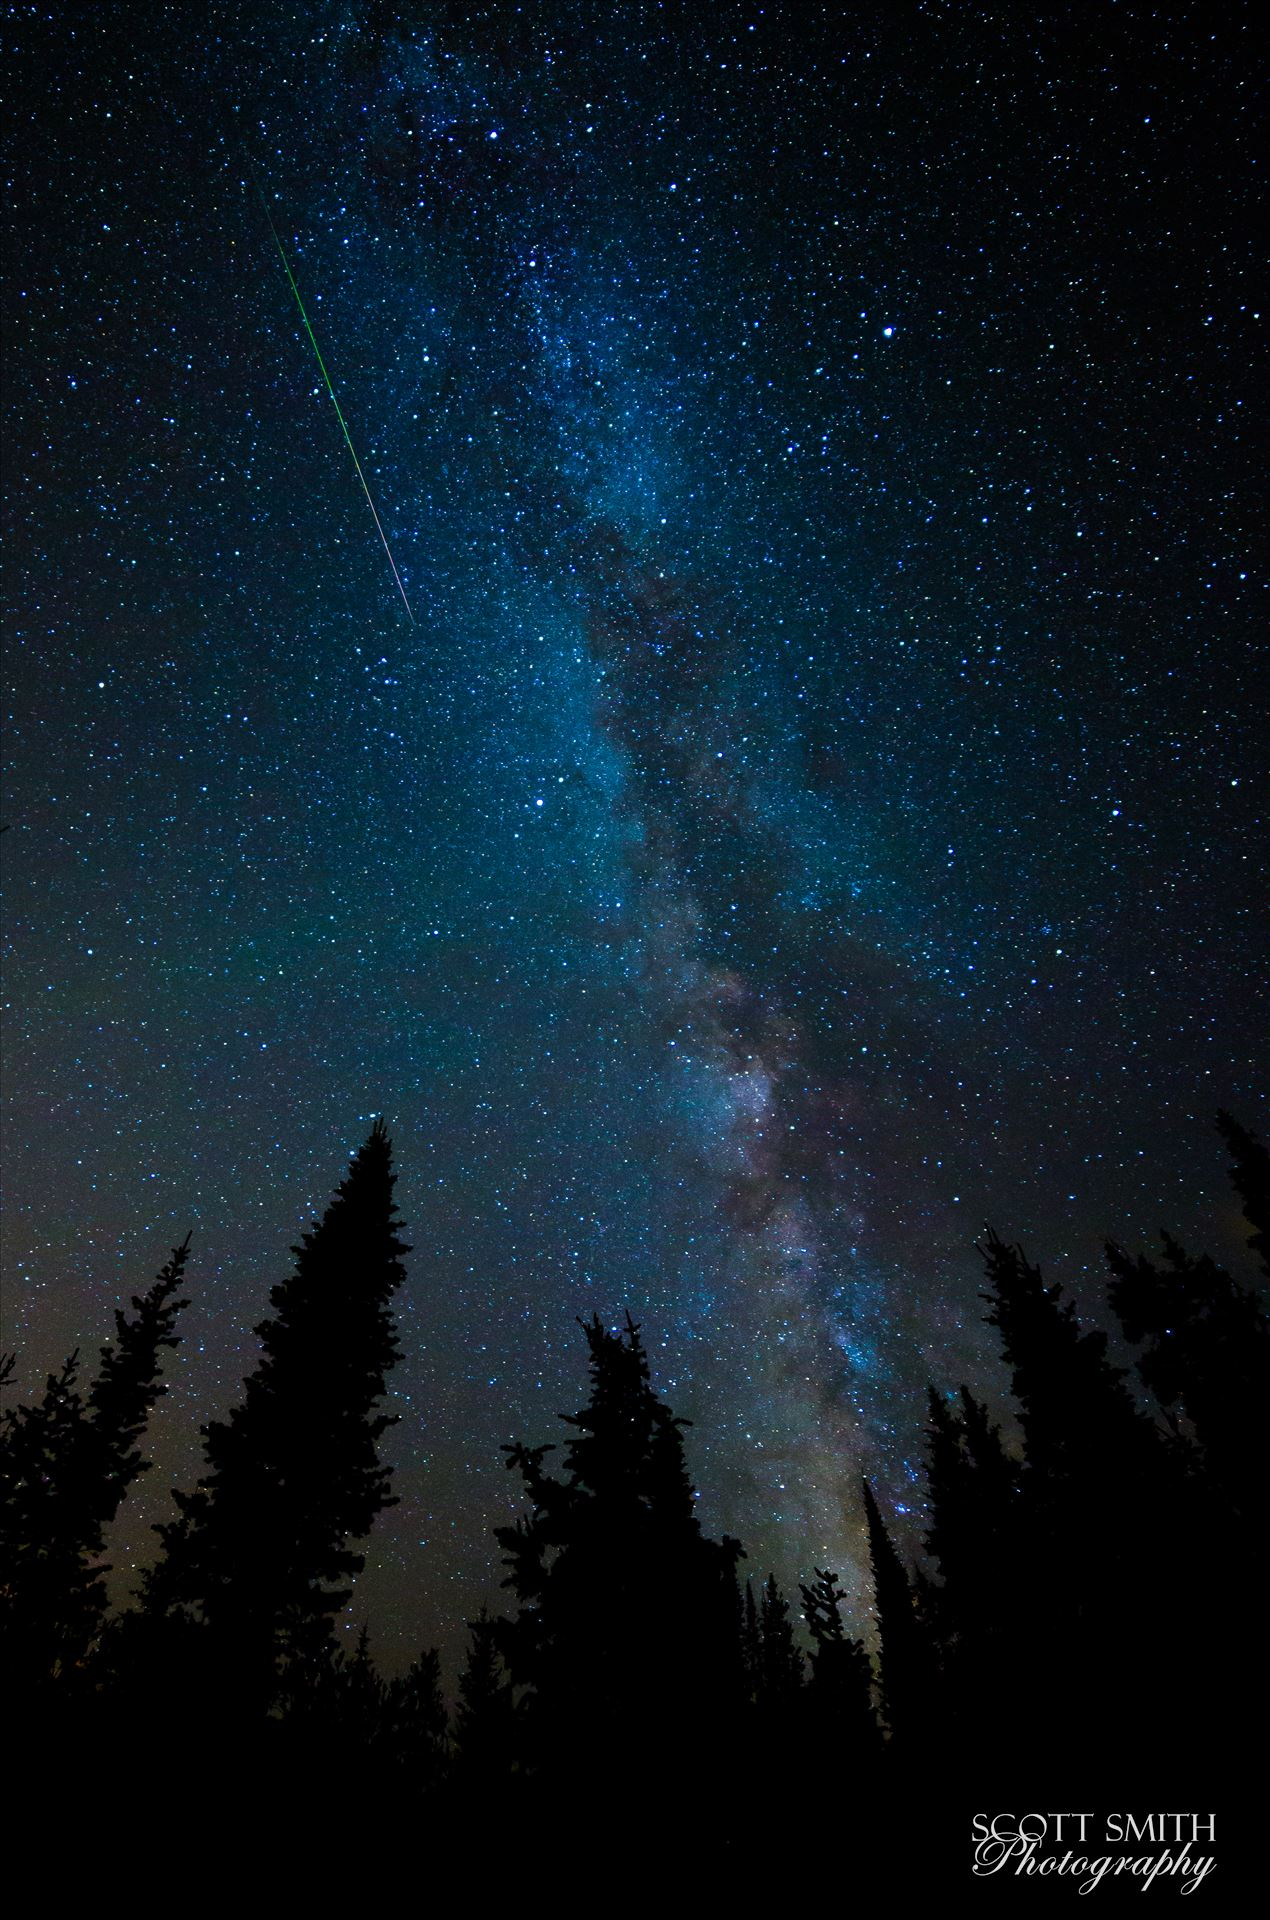 Milky Way and Meteorite from the Perseids - A lone meteorite streaks through the sky near the Milky Way, at the Brainard Lake State Recreation Area near Ward, Colorado. by D Scott Smith